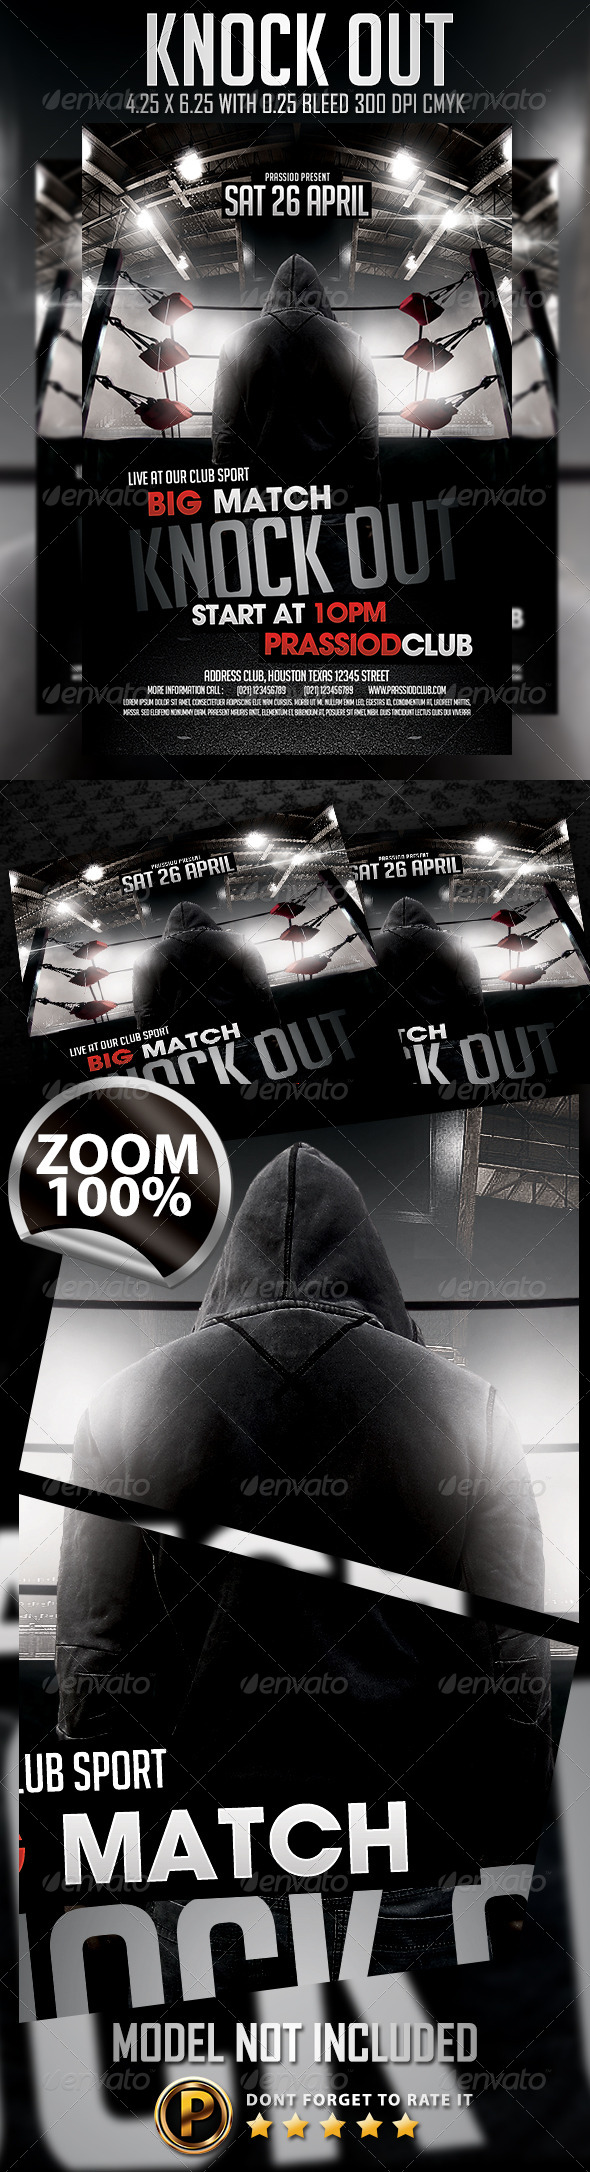 Knock Out Flyer Template - Sports Events